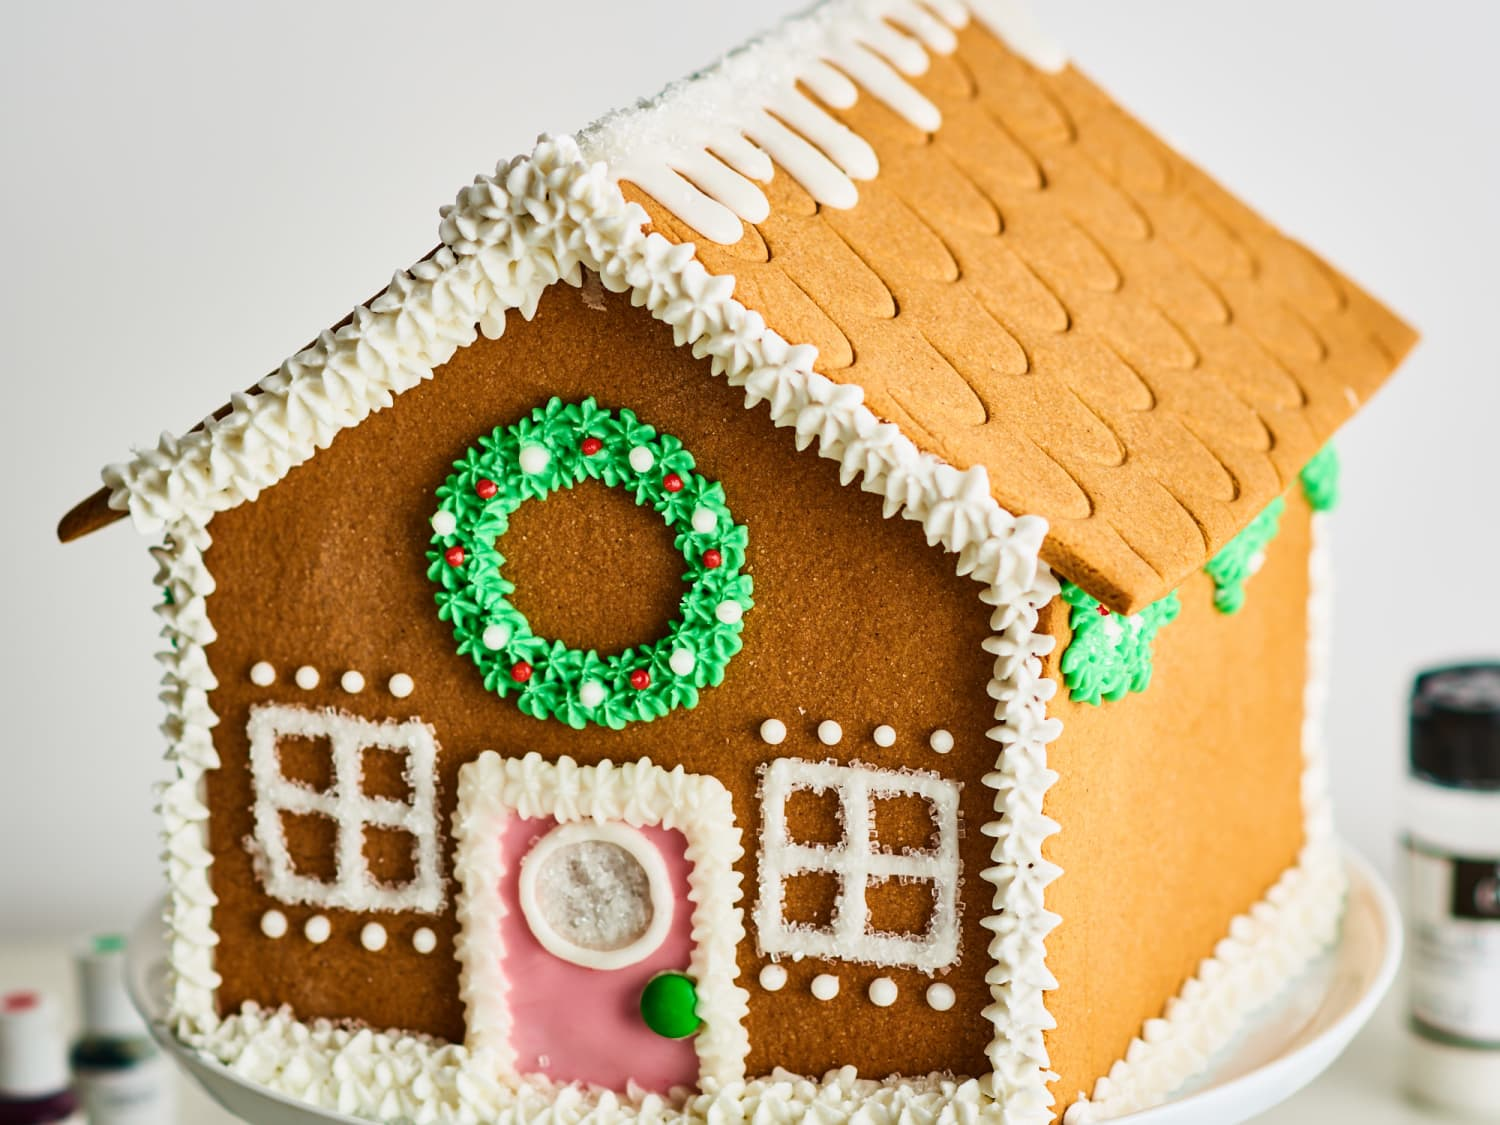 How To Make An Easy Impressive Gingerbread House